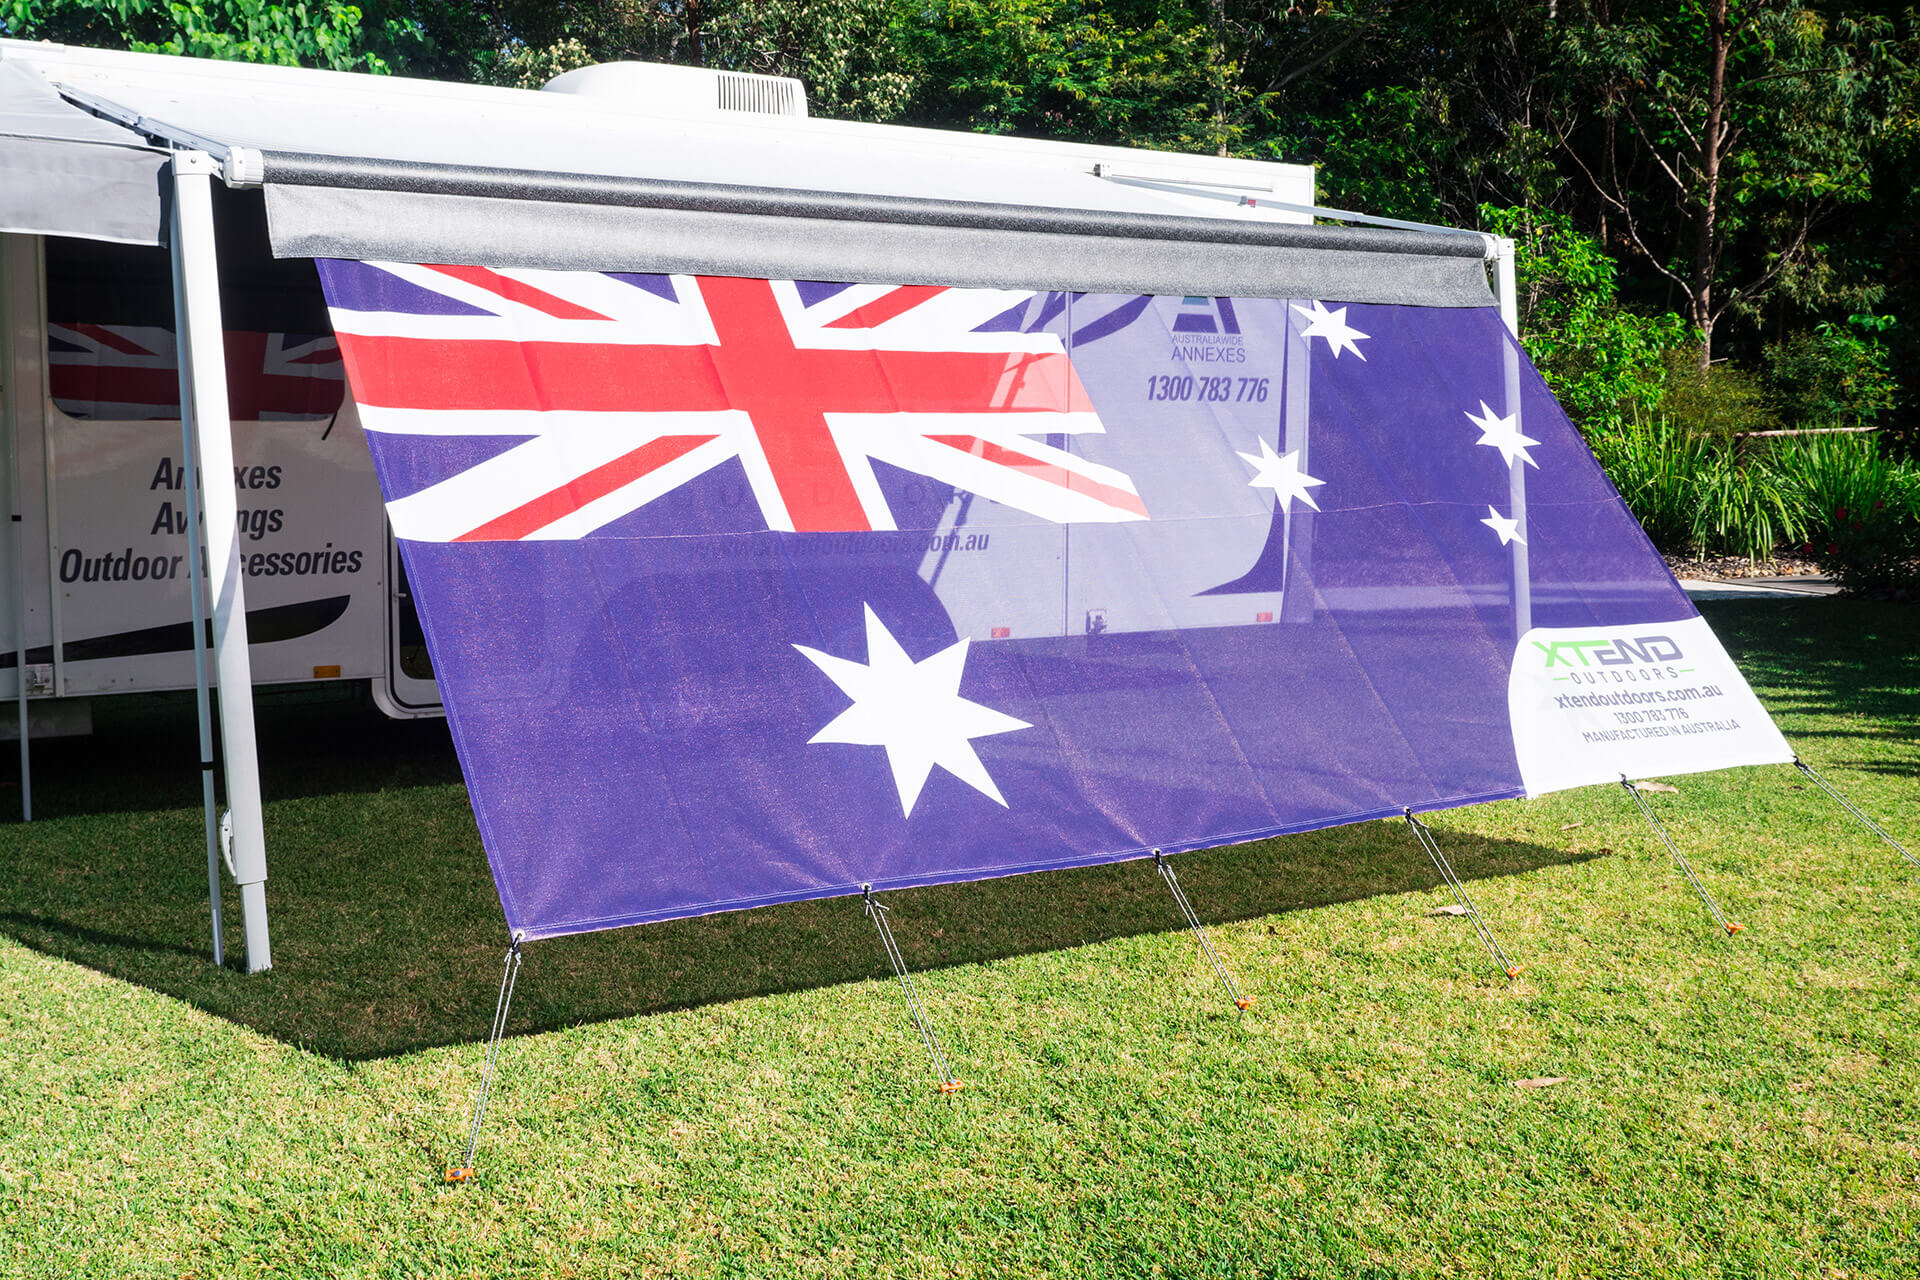 installation coast out awning roll top end full side screen shade for privacy walls caravan manufacturer sun image wall rv pop